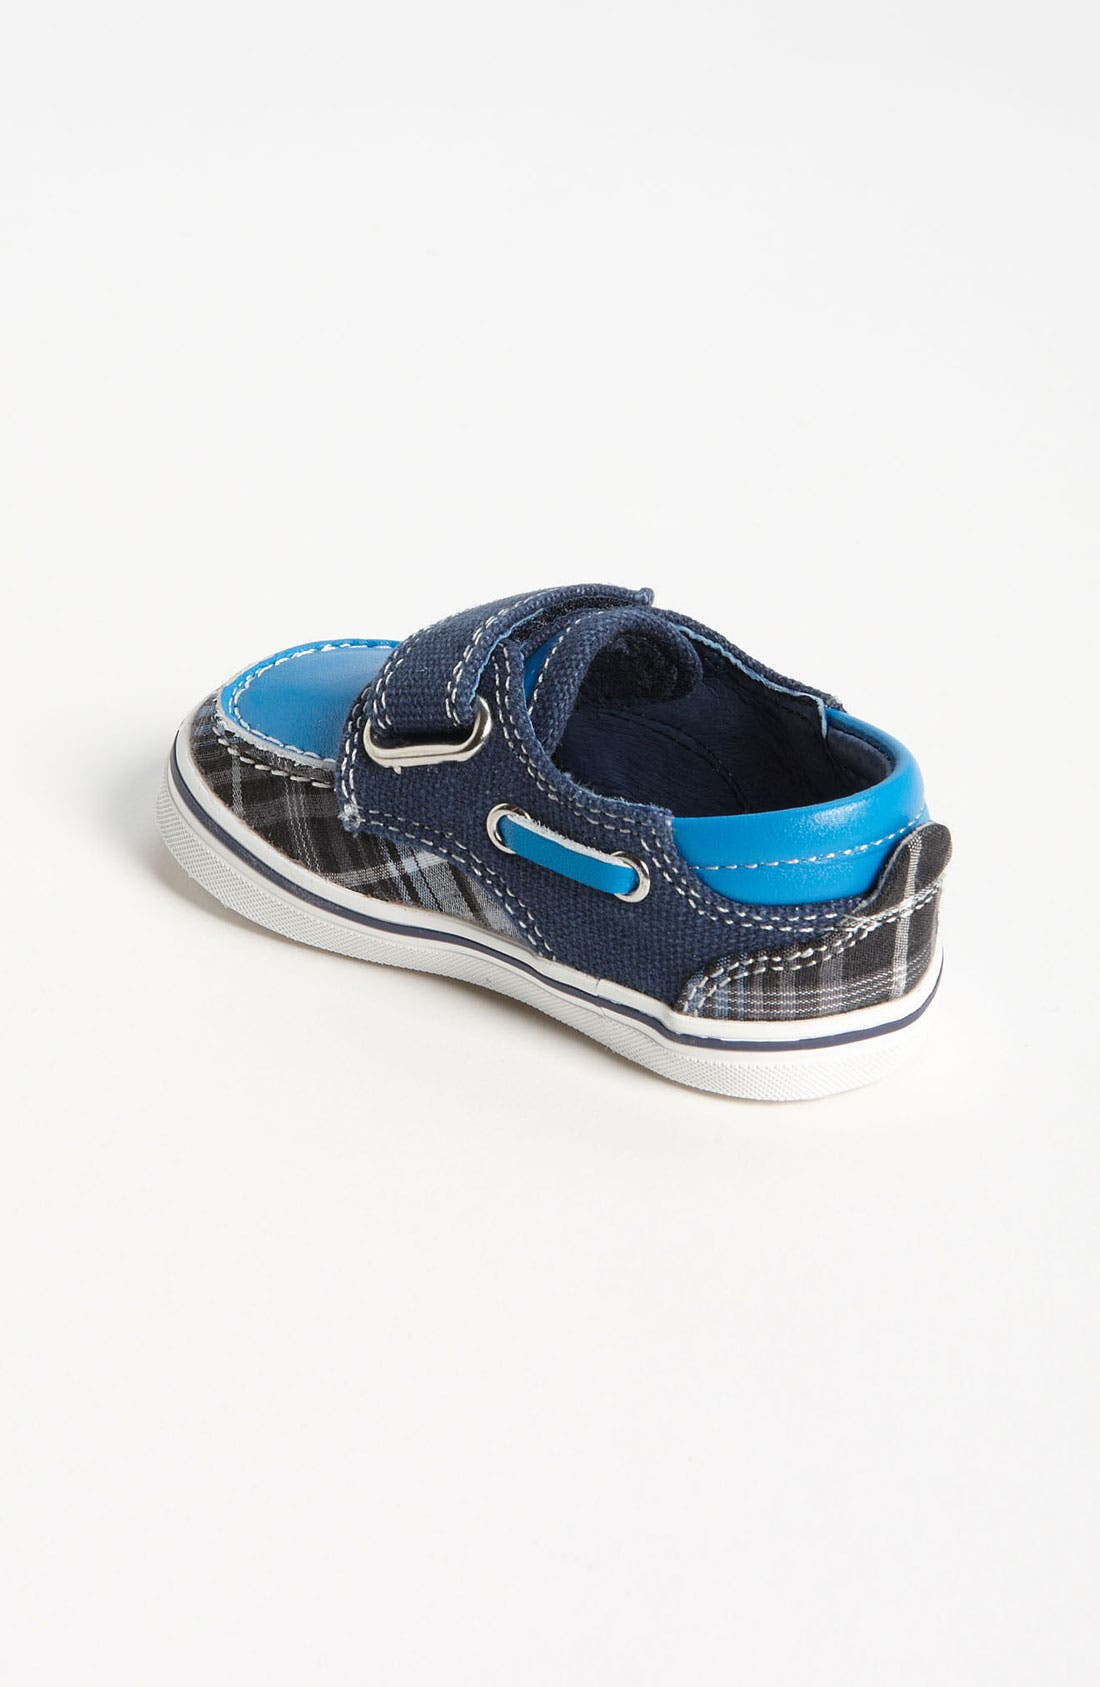 Alternate Image 2  - Cole Haan 'Mini Cory' Boat Shoe (Baby)